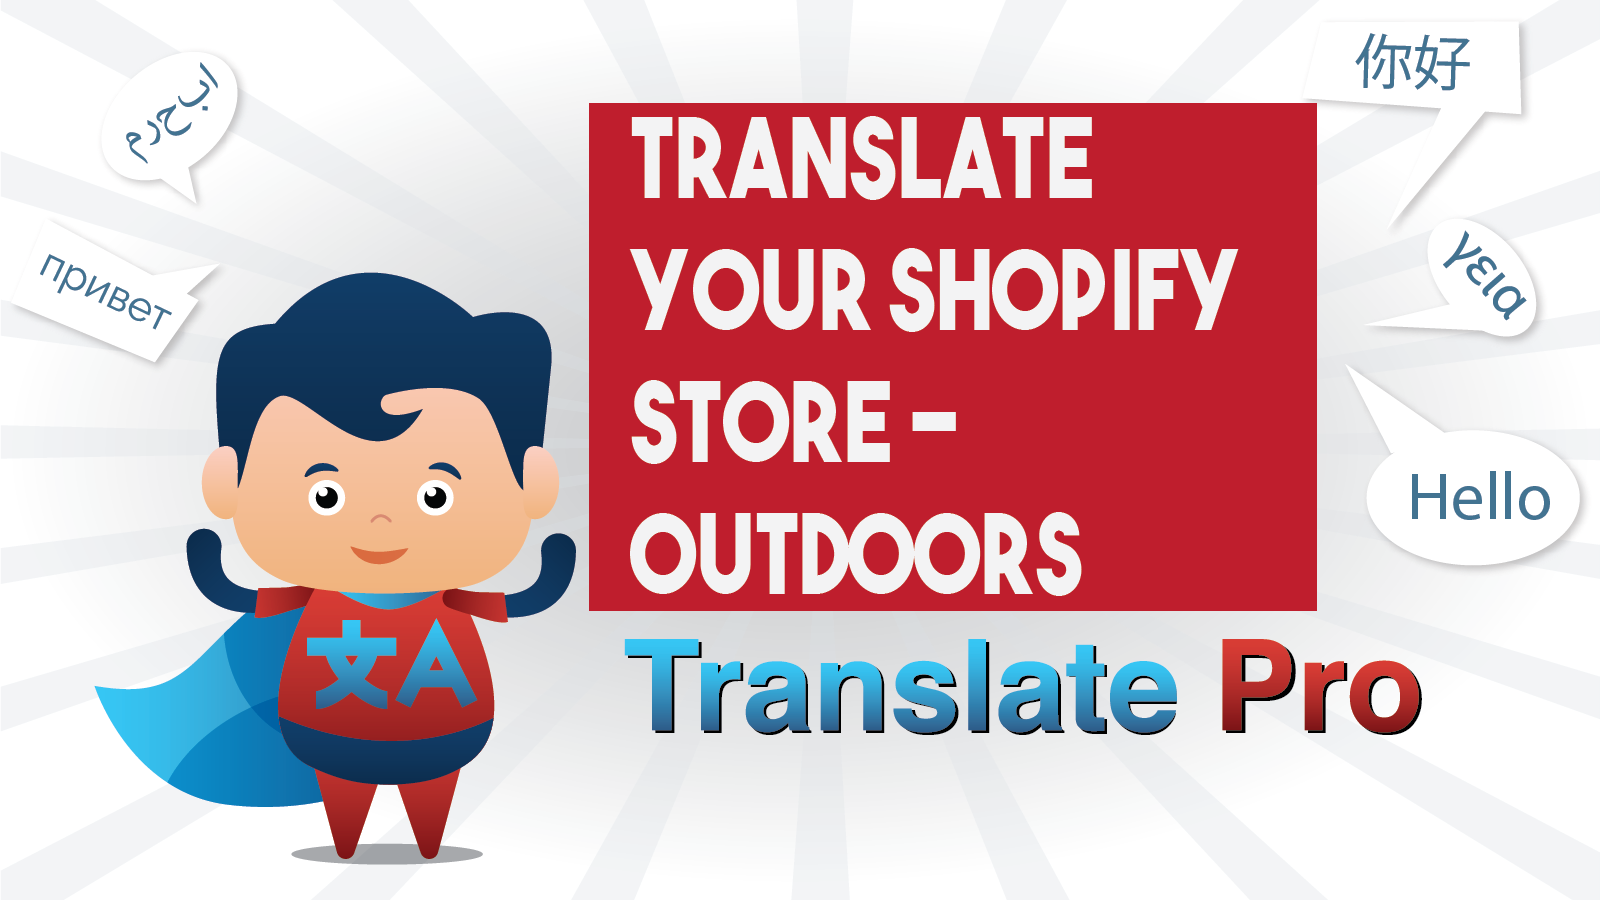 How To Translate Your Shopify Outdoors Store